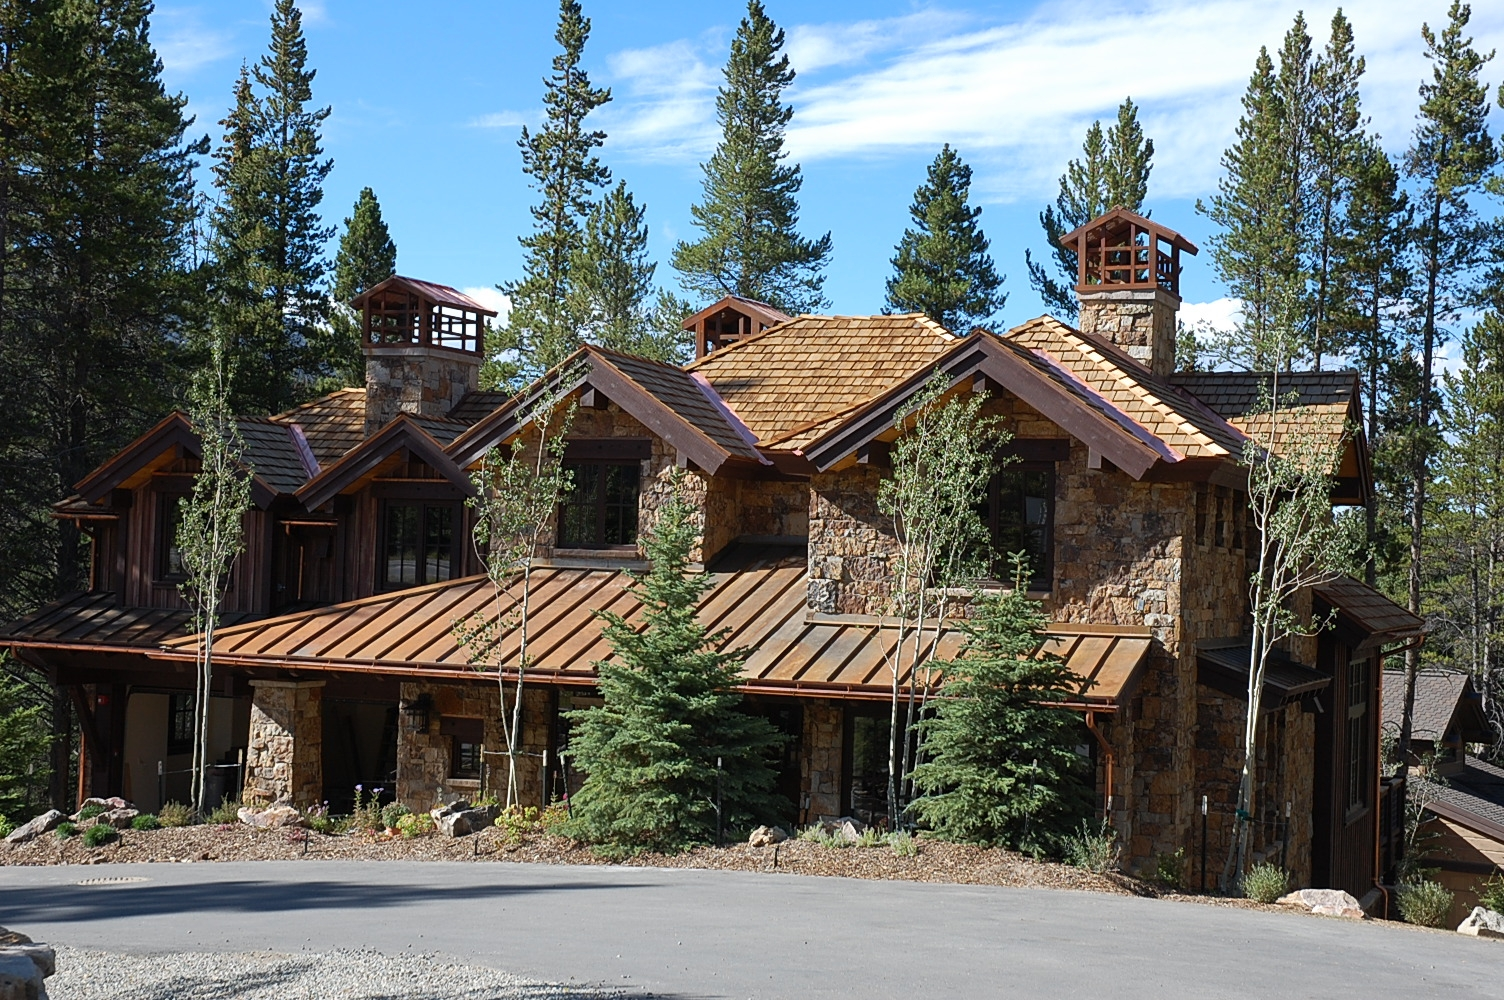 home living. A luxury homes in Breckenridge costs $1.5 million or more